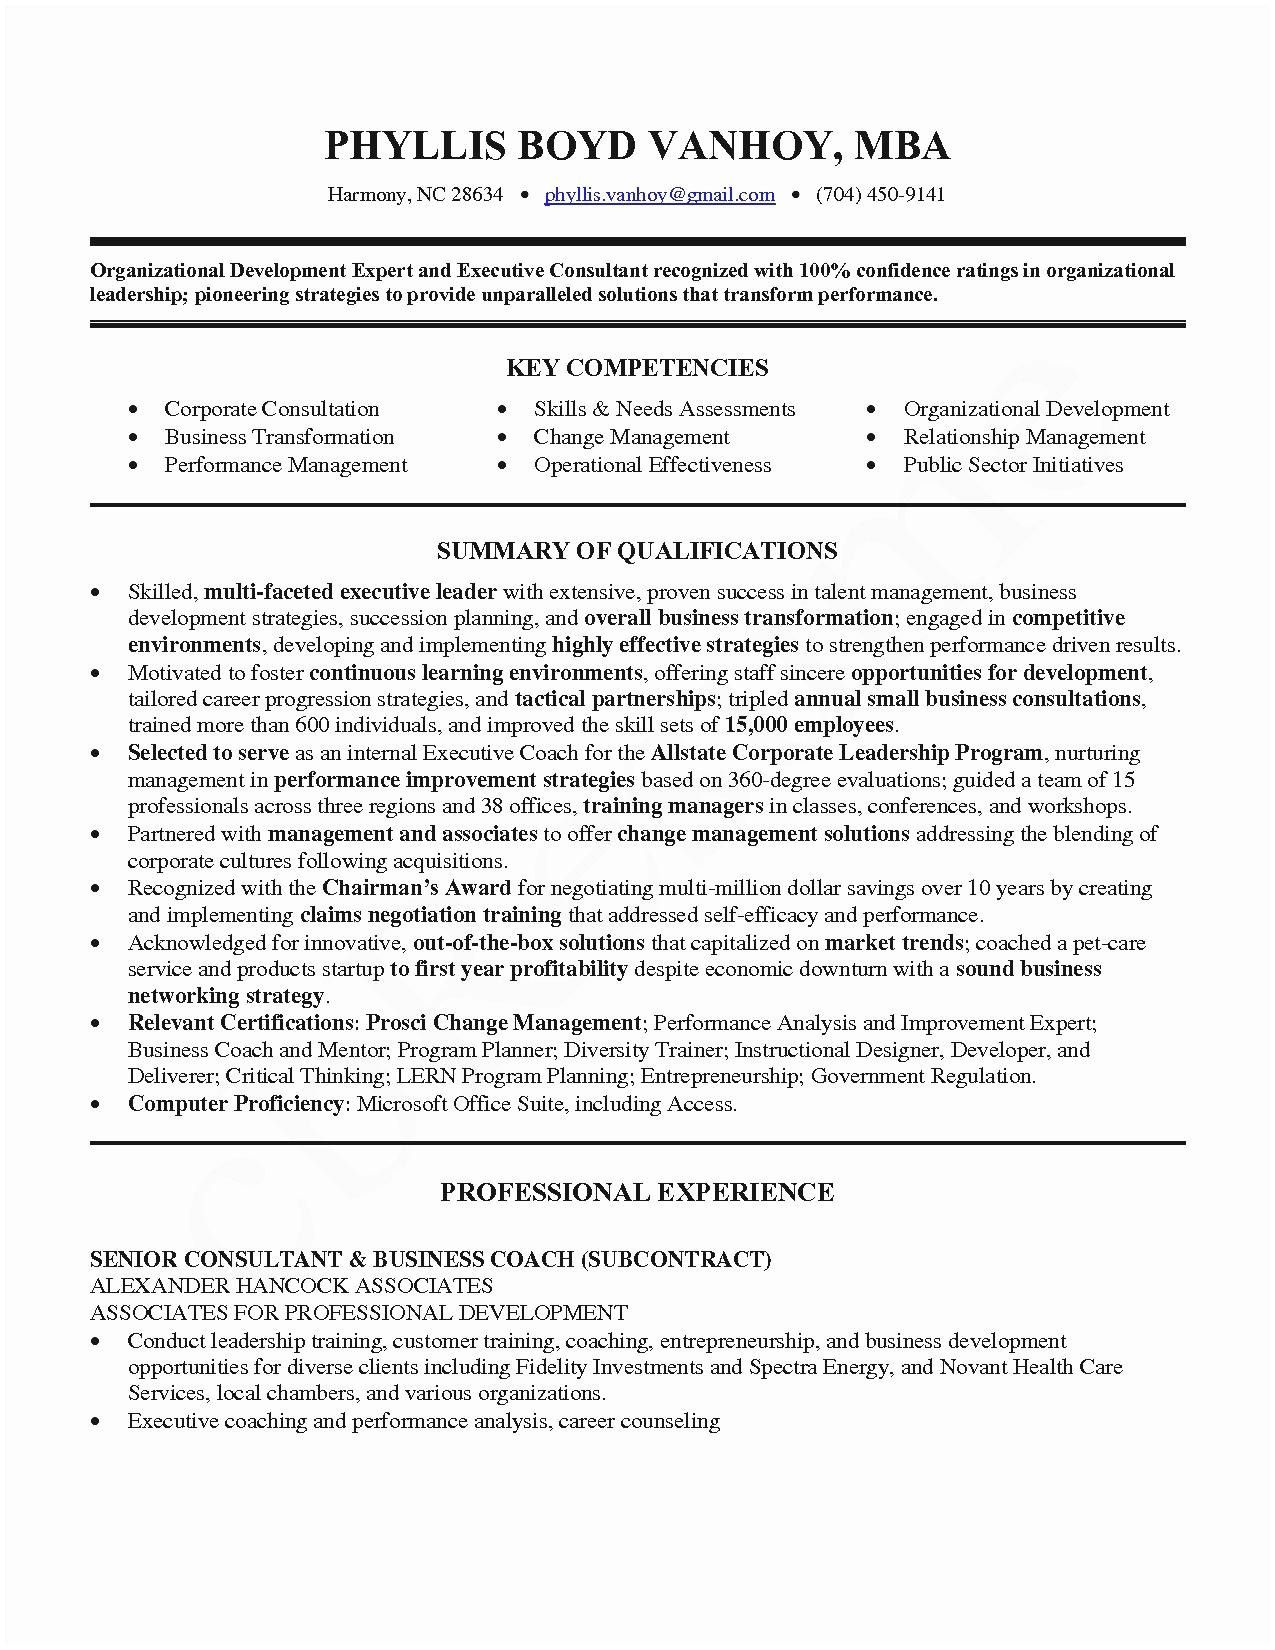 Hr Consultant Resume Sample New Lovely Resume Pdf New Resume Examples Pdf Best Resume Pdf 0d